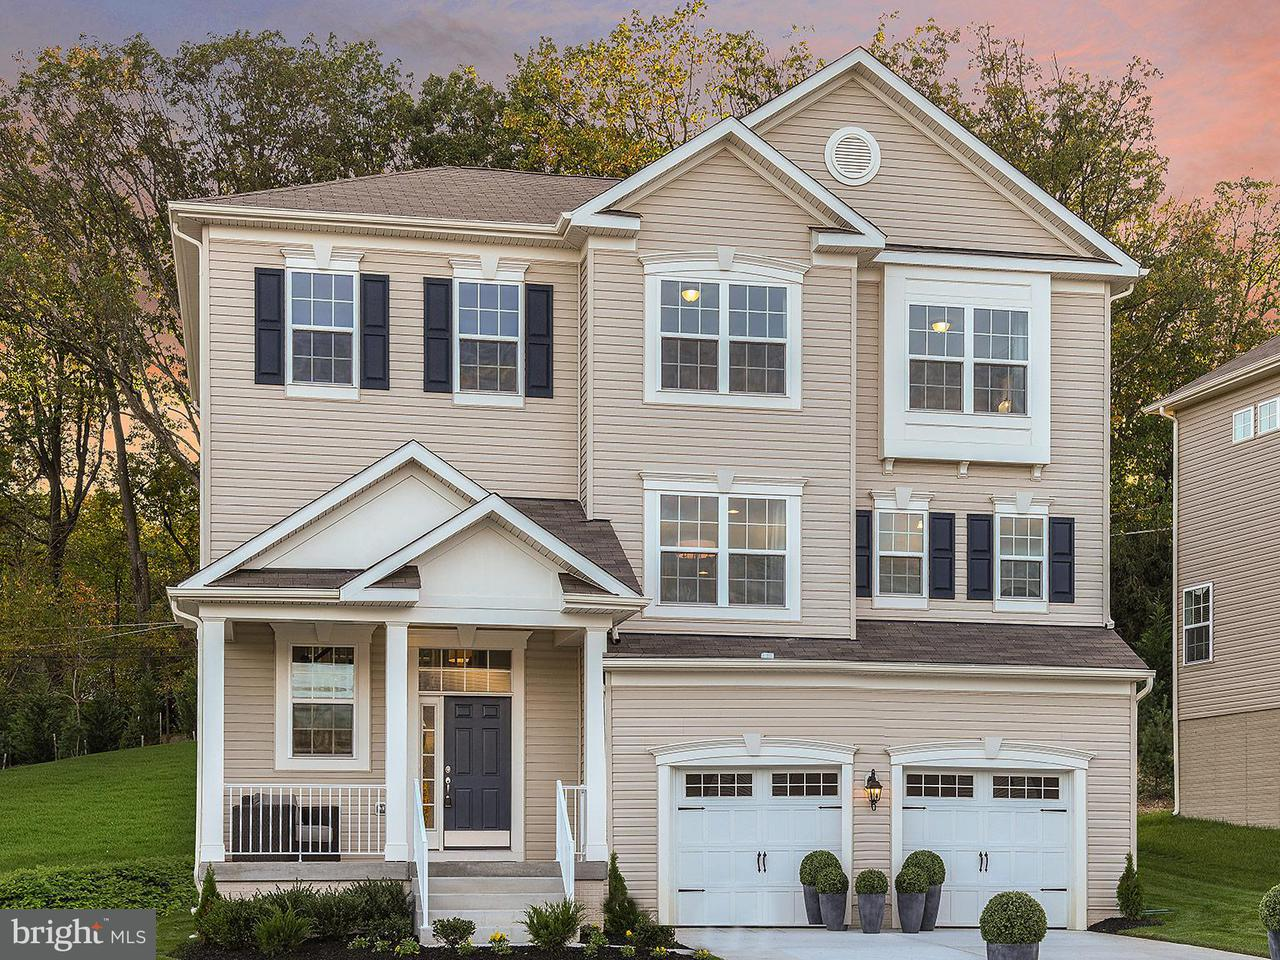 Single Family Home for Sale at 1925 RUSHLEY Road 1925 RUSHLEY Road Parkville, Maryland 21234 United States